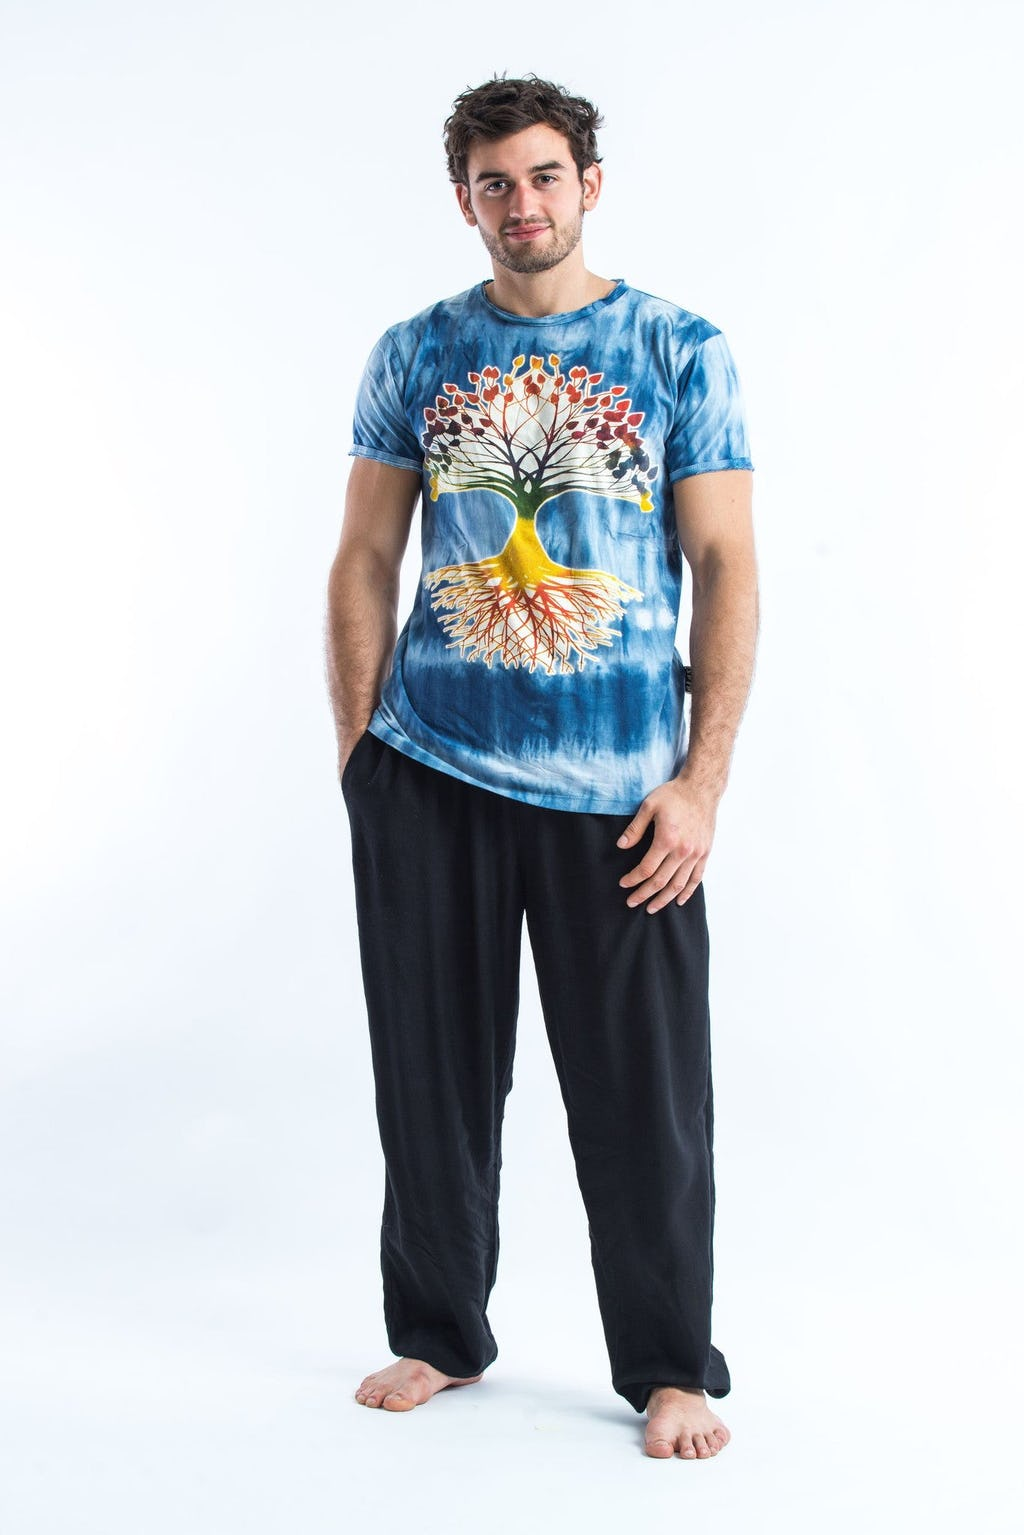 Sure design t shirts and clothing - Sure Design Tie Dye Super Soft T Shirts Tree Of Life Blue